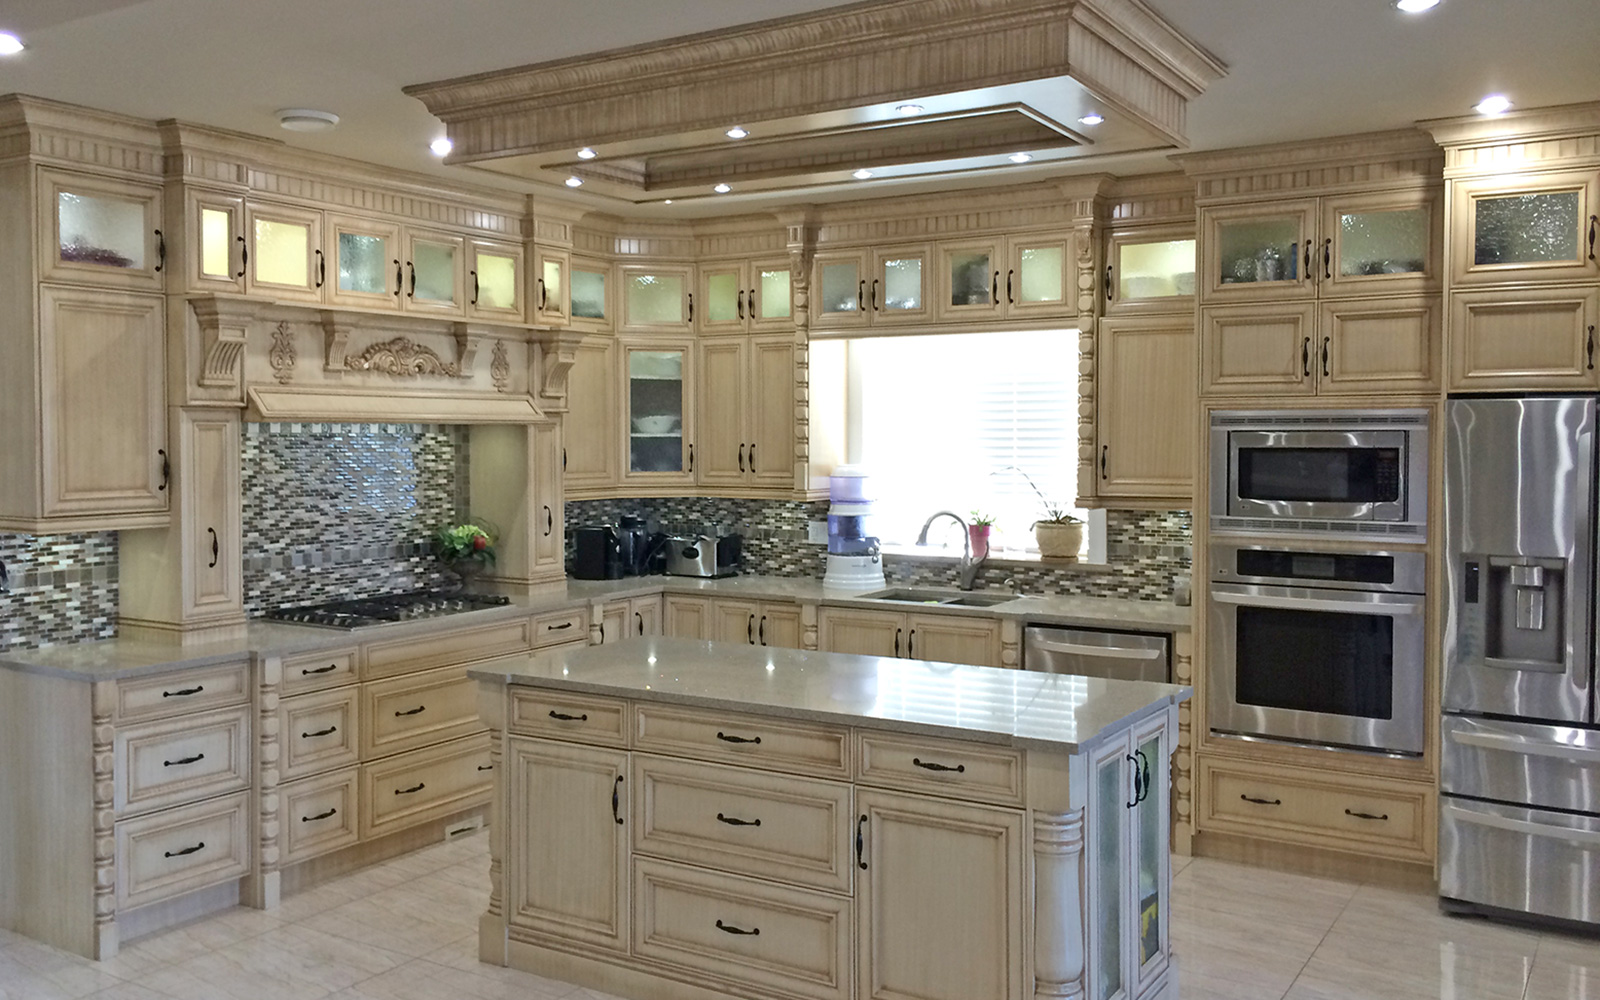 Calgary custom kitchen cabinets ltd kitchen cabinets for I kitchen cabinet